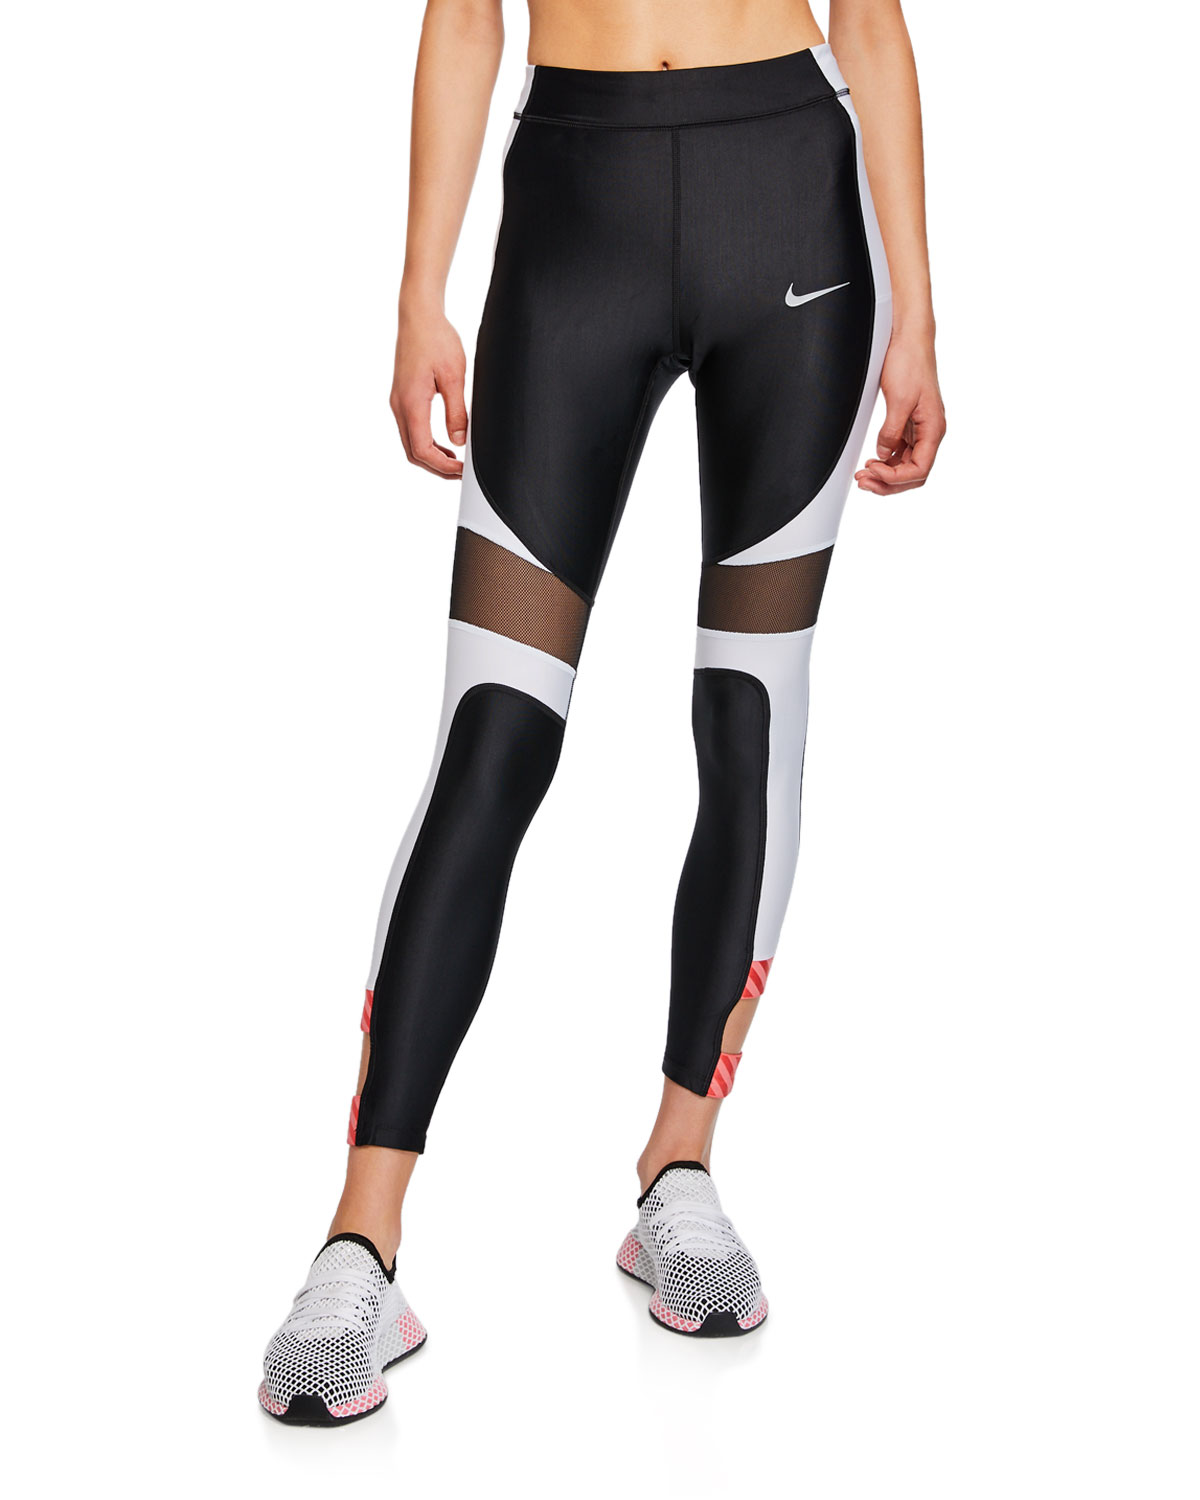 b8e7e198deb78 Nike Speed Colorblock 7/8 Performance Tights | Neiman Marcus